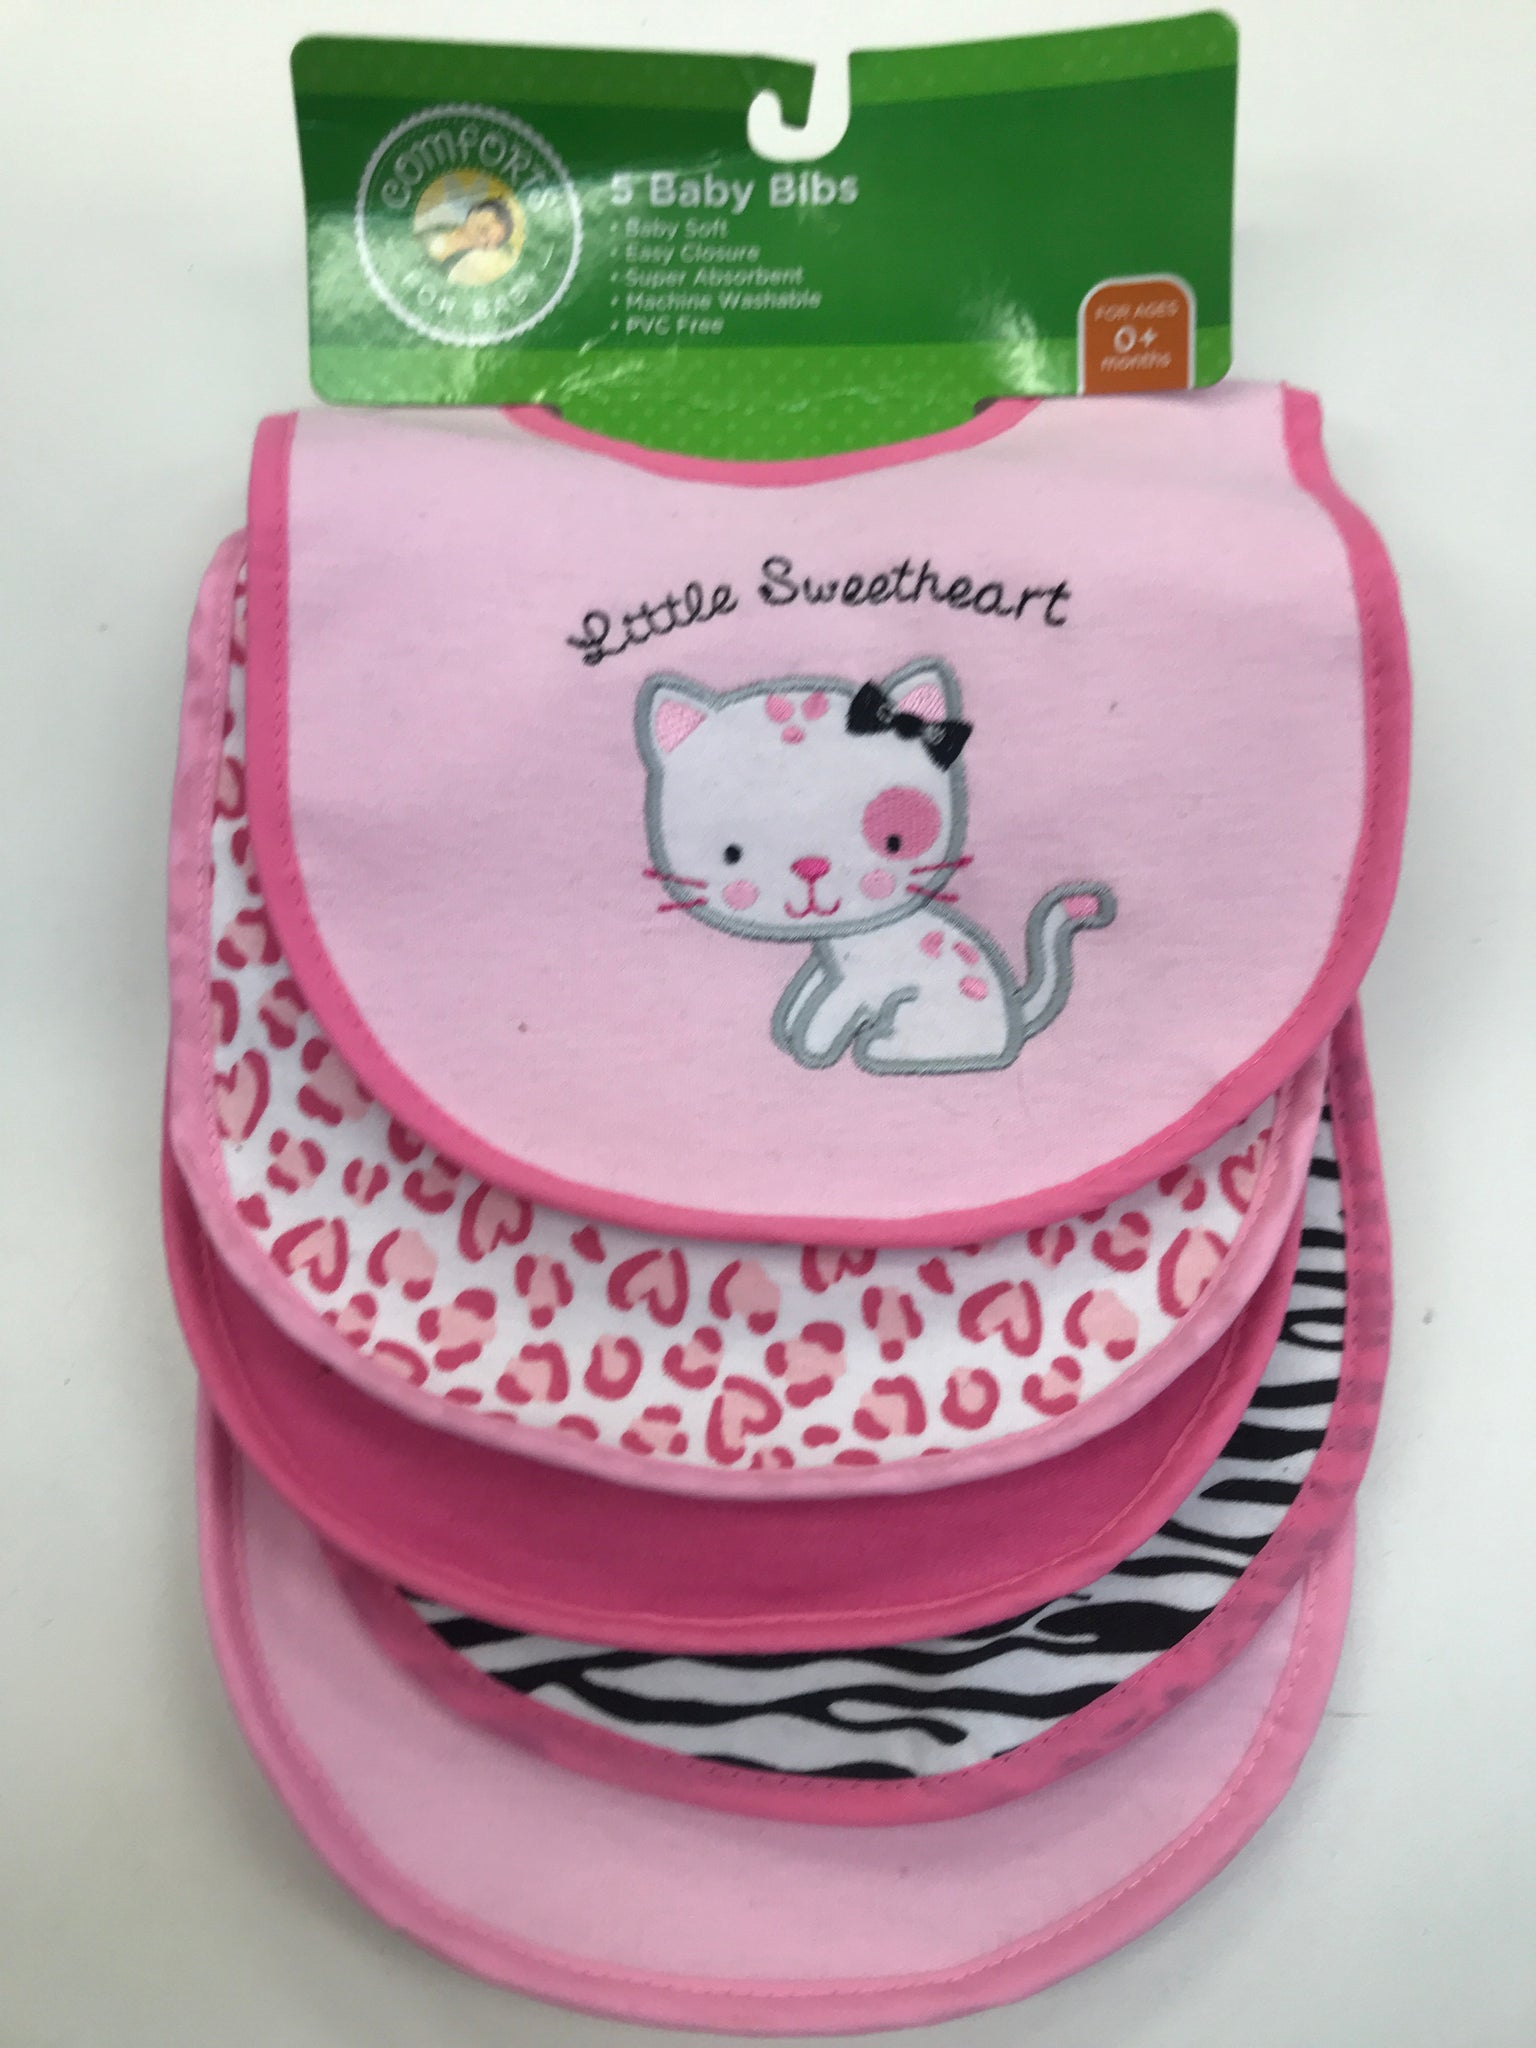 Infant Bibs pack of 5